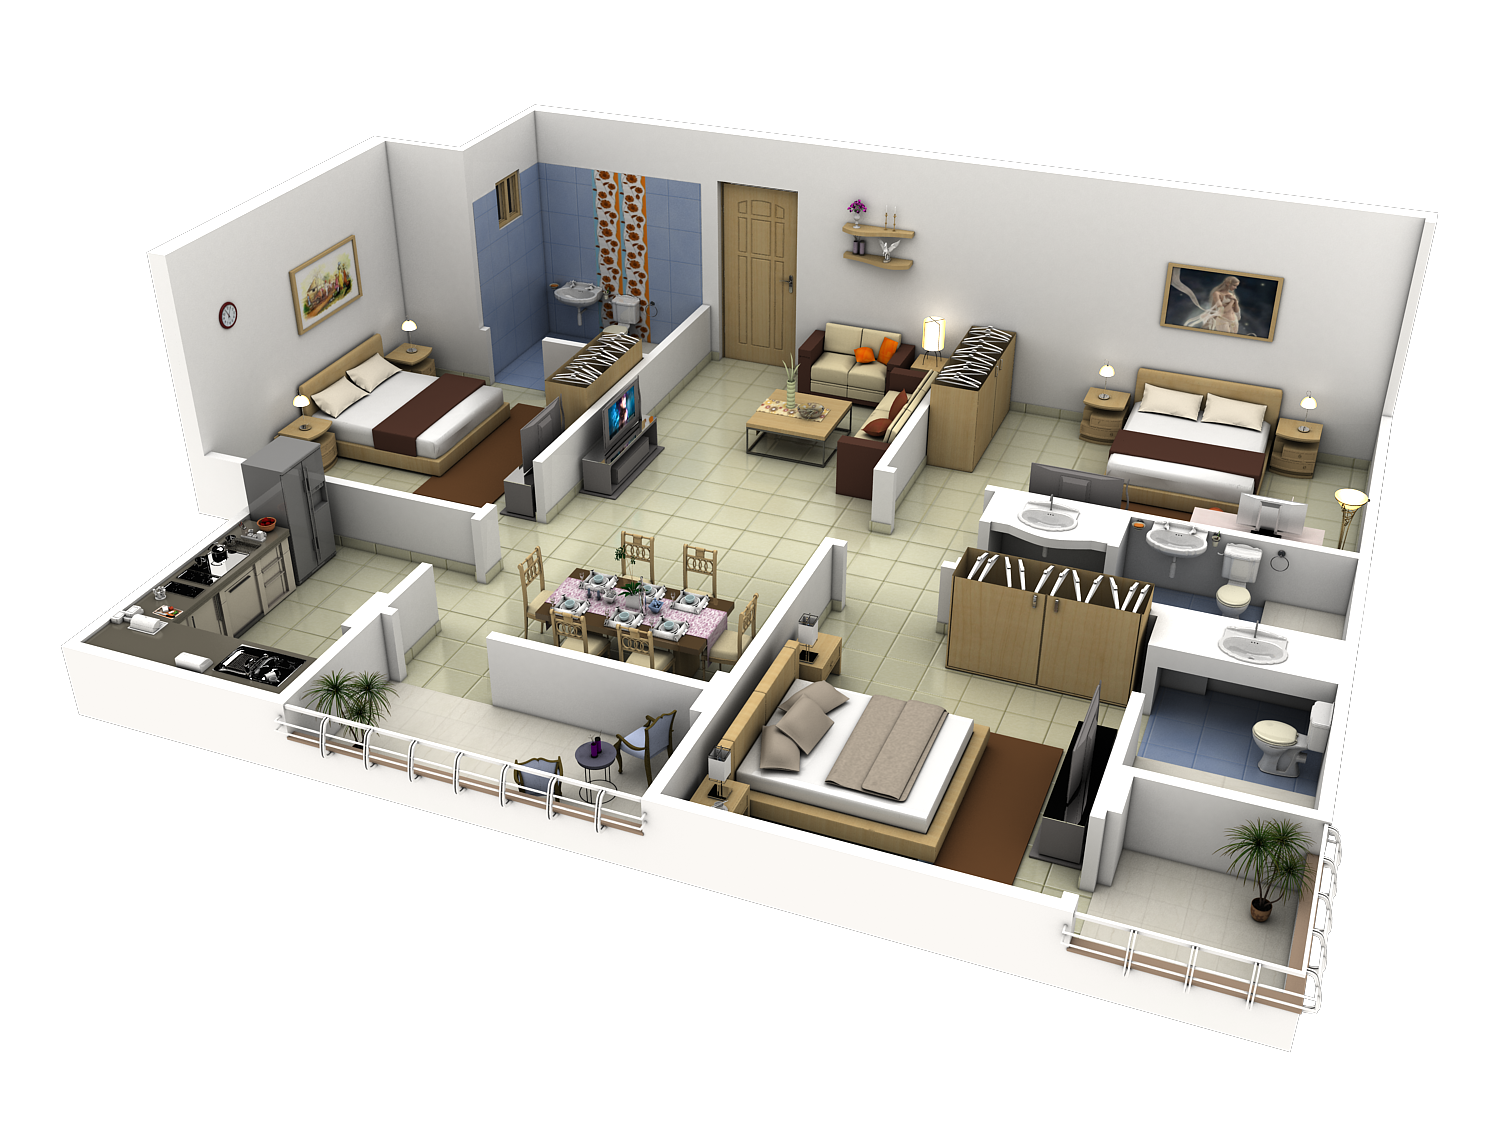 Tech n gen july 2011 renders pinterest tech house for 3d bedroom plan